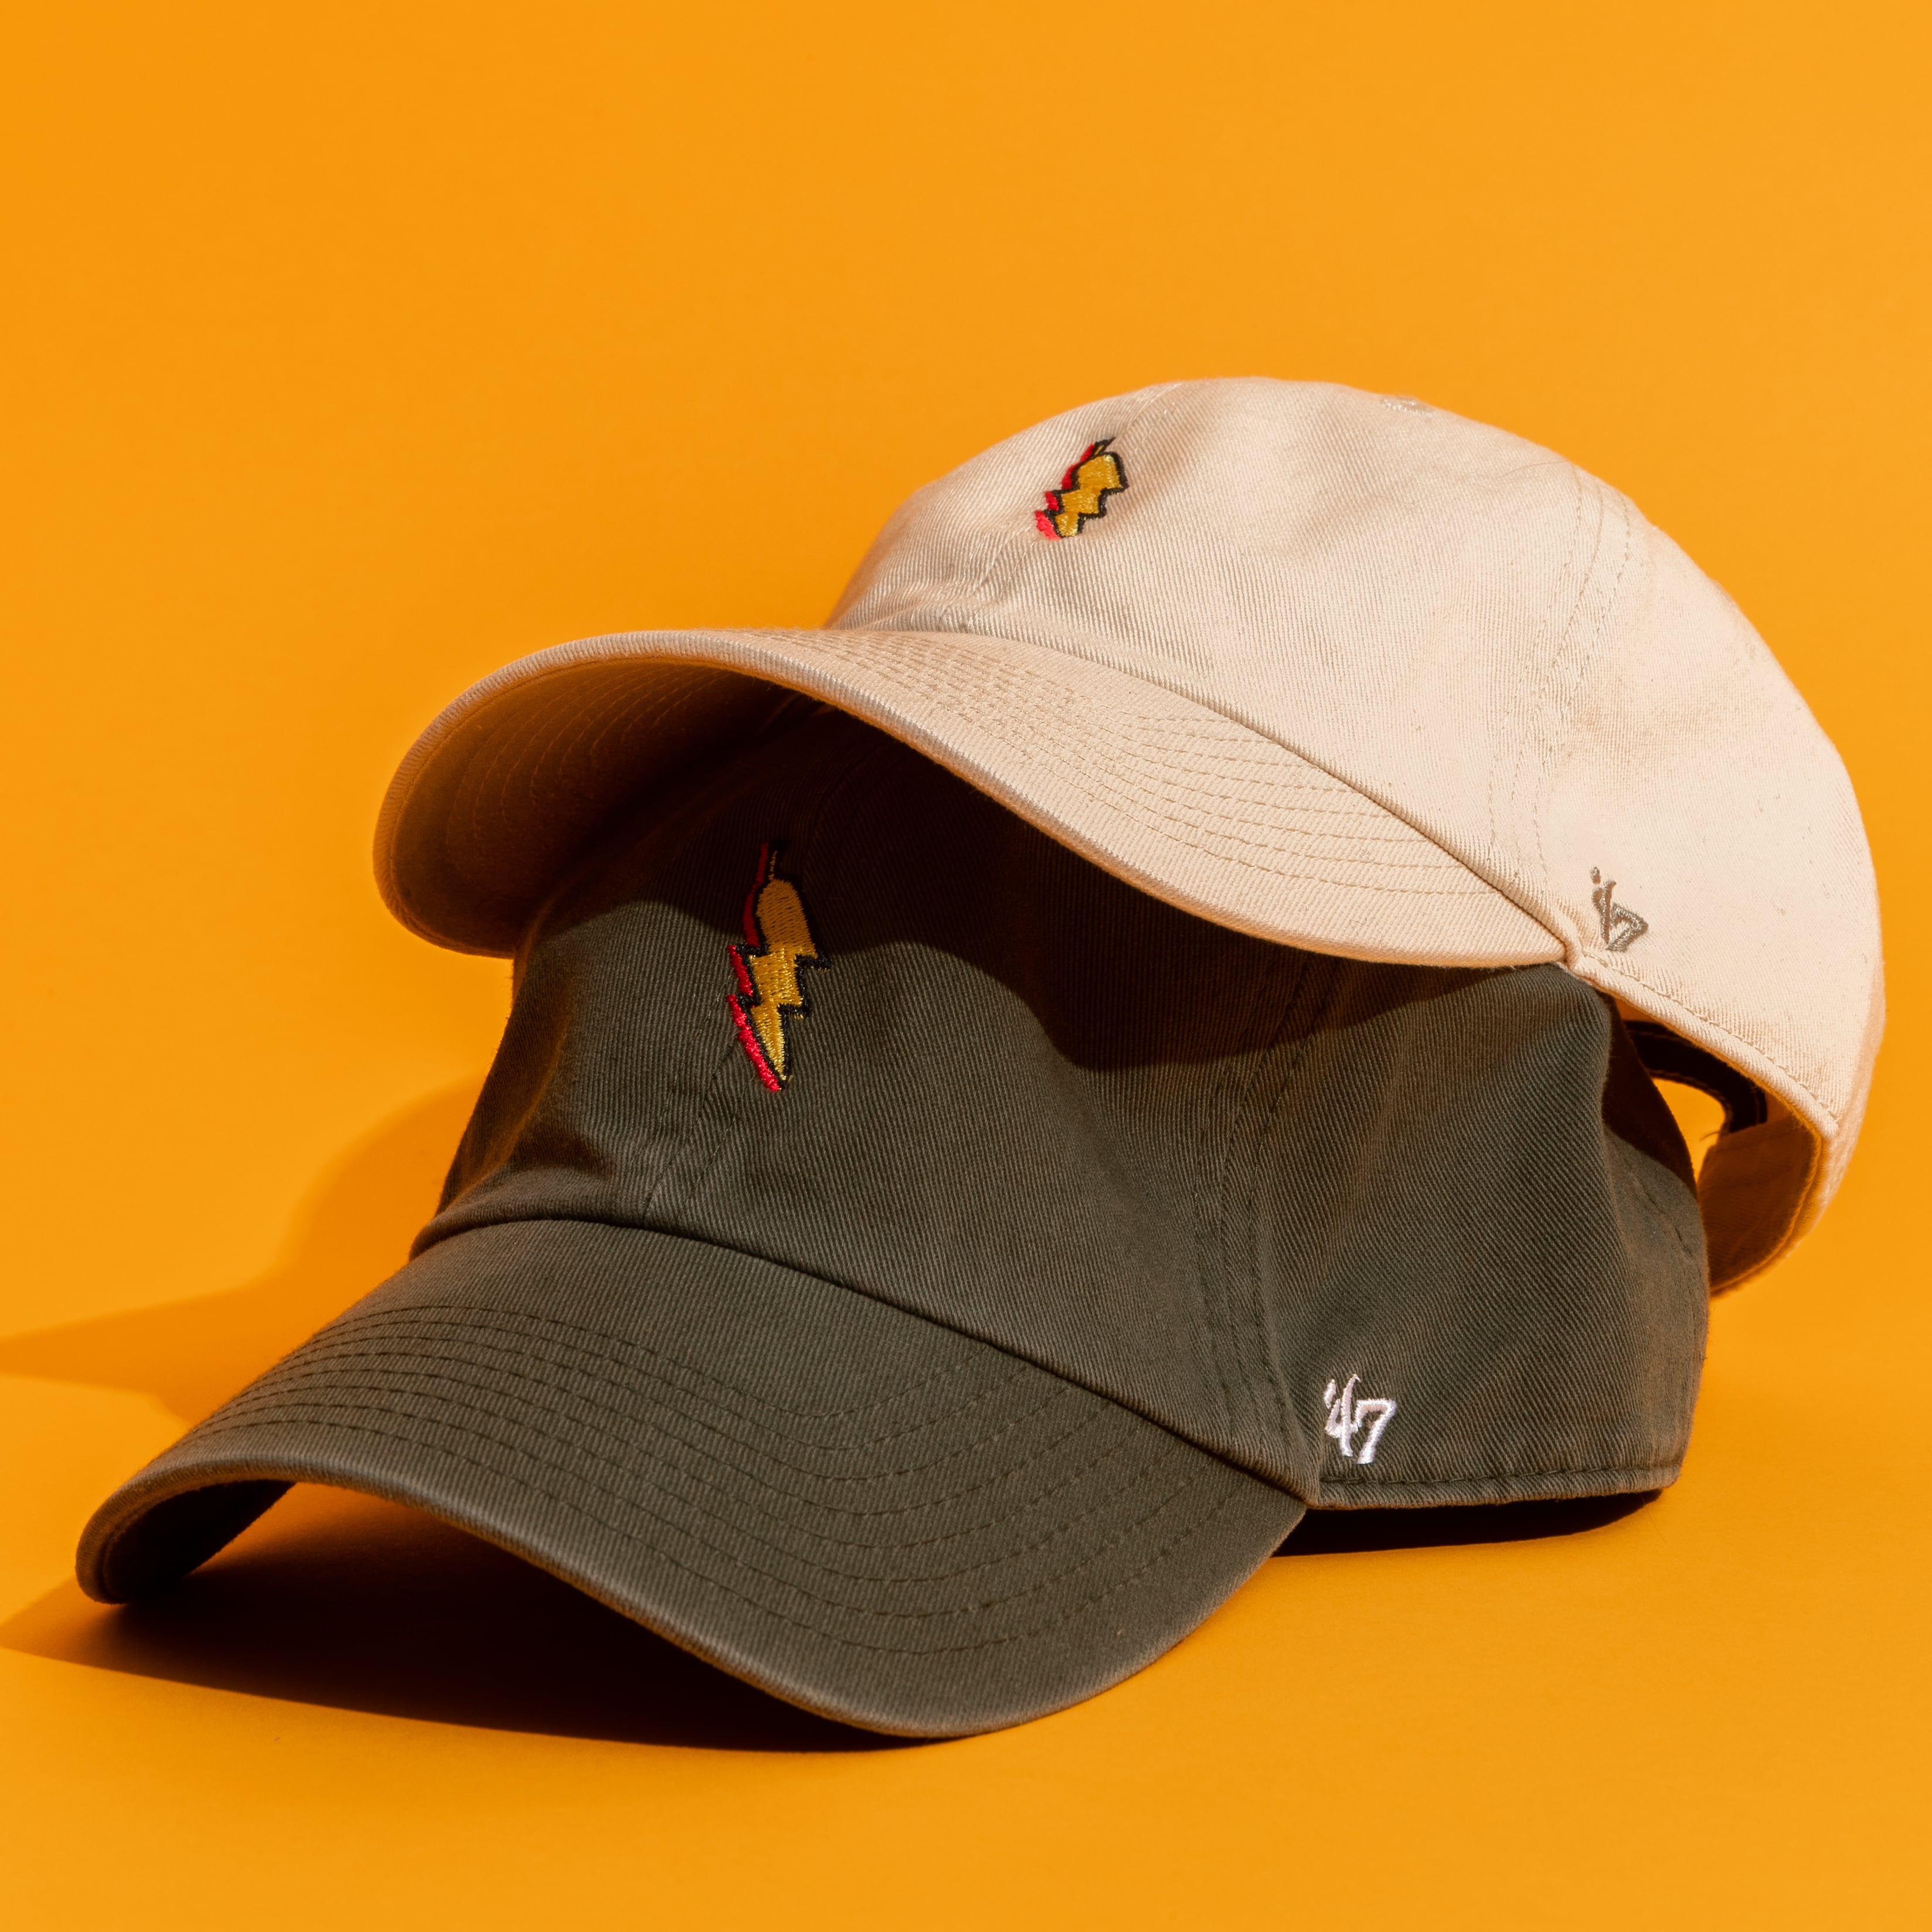 Two golf caps, one stacked on top of another but stacked slightly tilted-back to show the front side of both hats